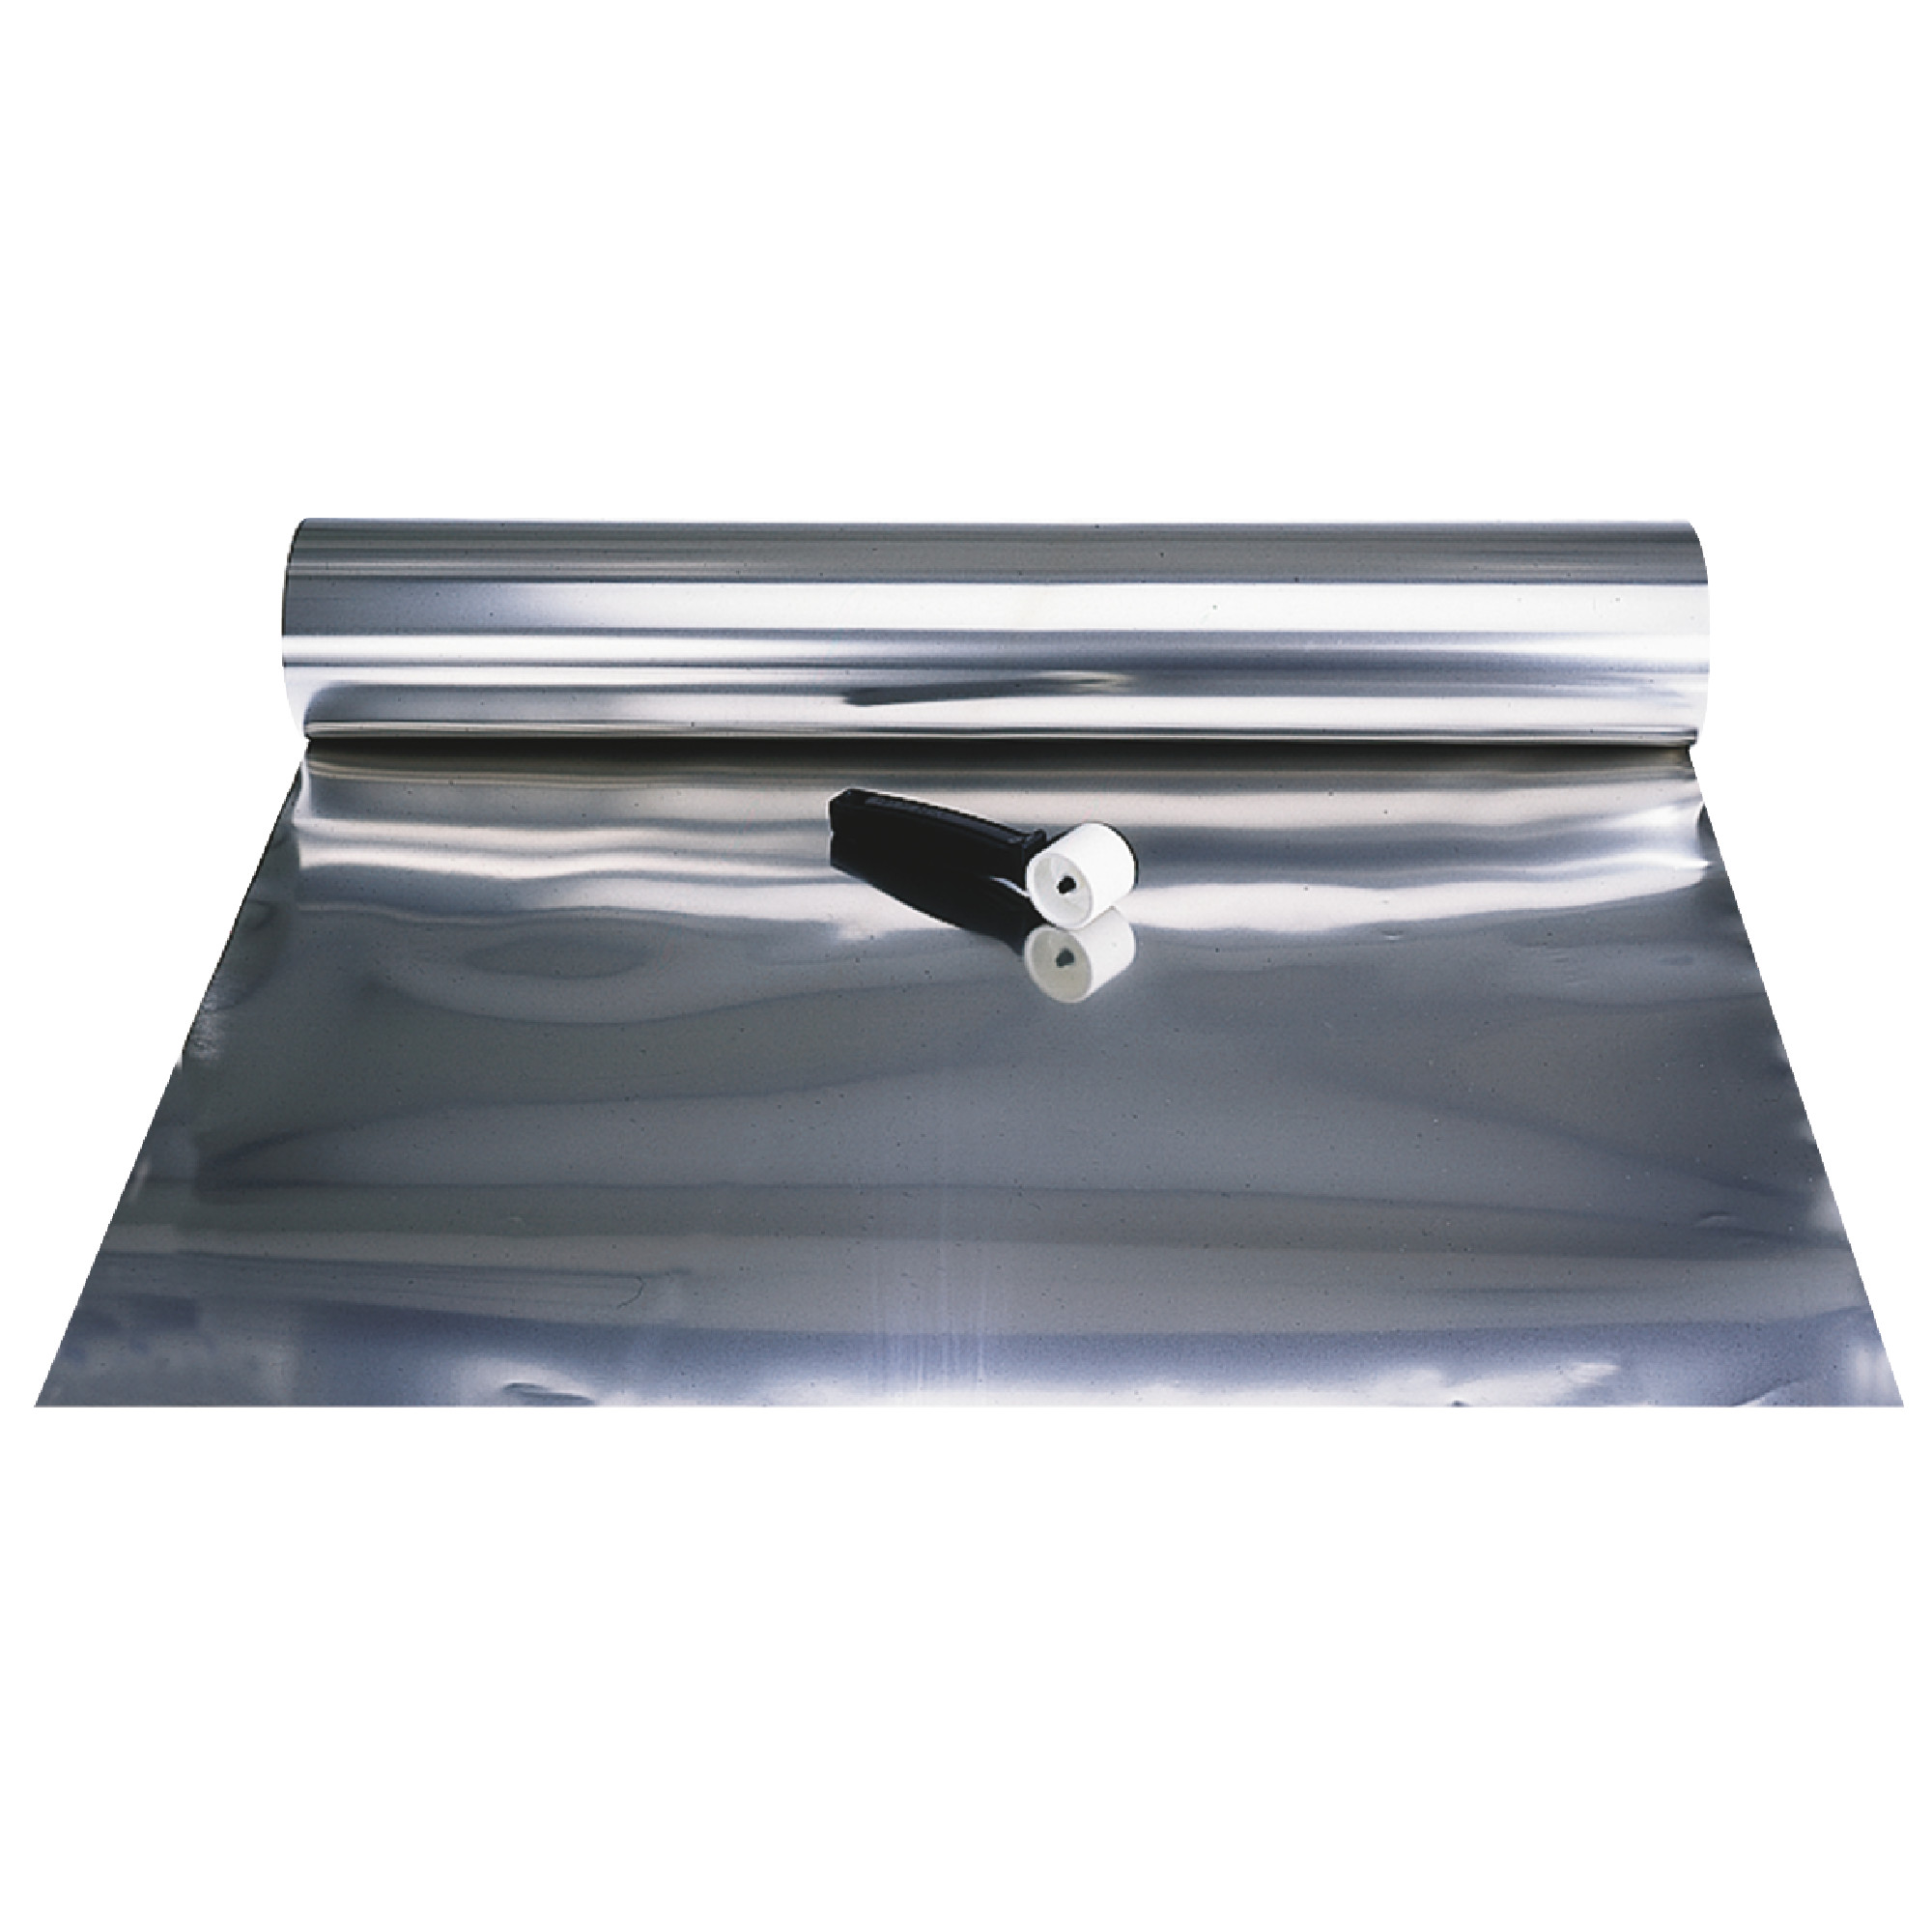 309 Annealed Stainless Steel Tool Wrap - High temp